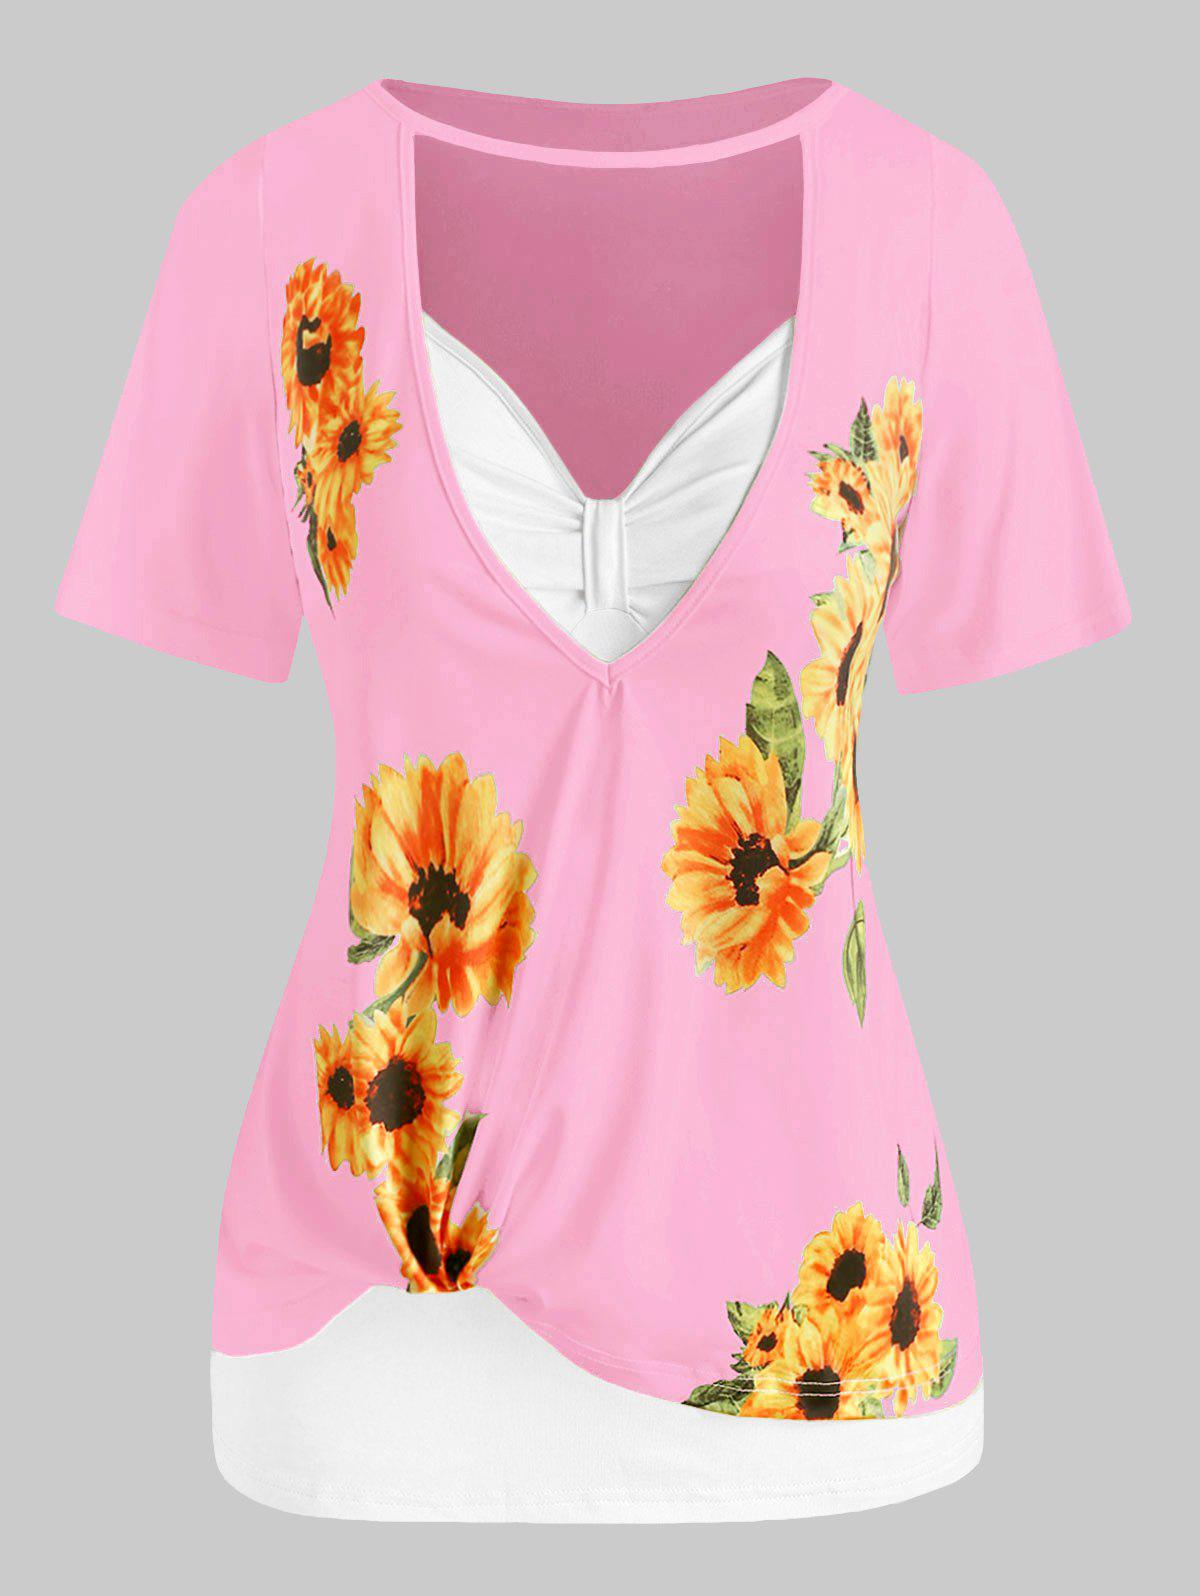 Plus Size Sunflower Print Cutout Tee and Tank Top Set - LIGHT PINK 4X